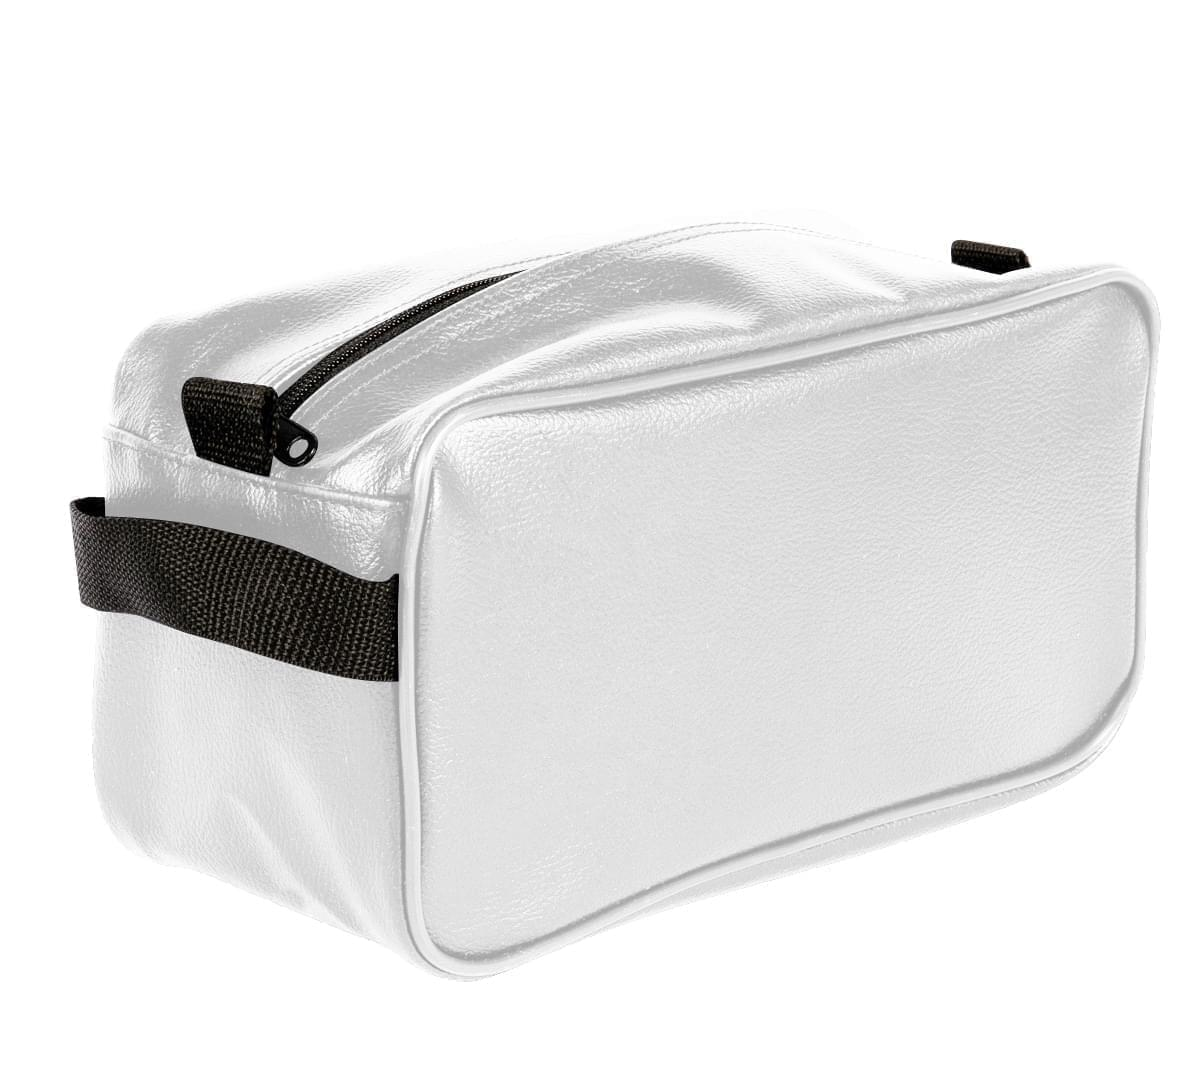 USA Made Cosmetic & Toiletry Cases, White-Black, 3000996-A3R